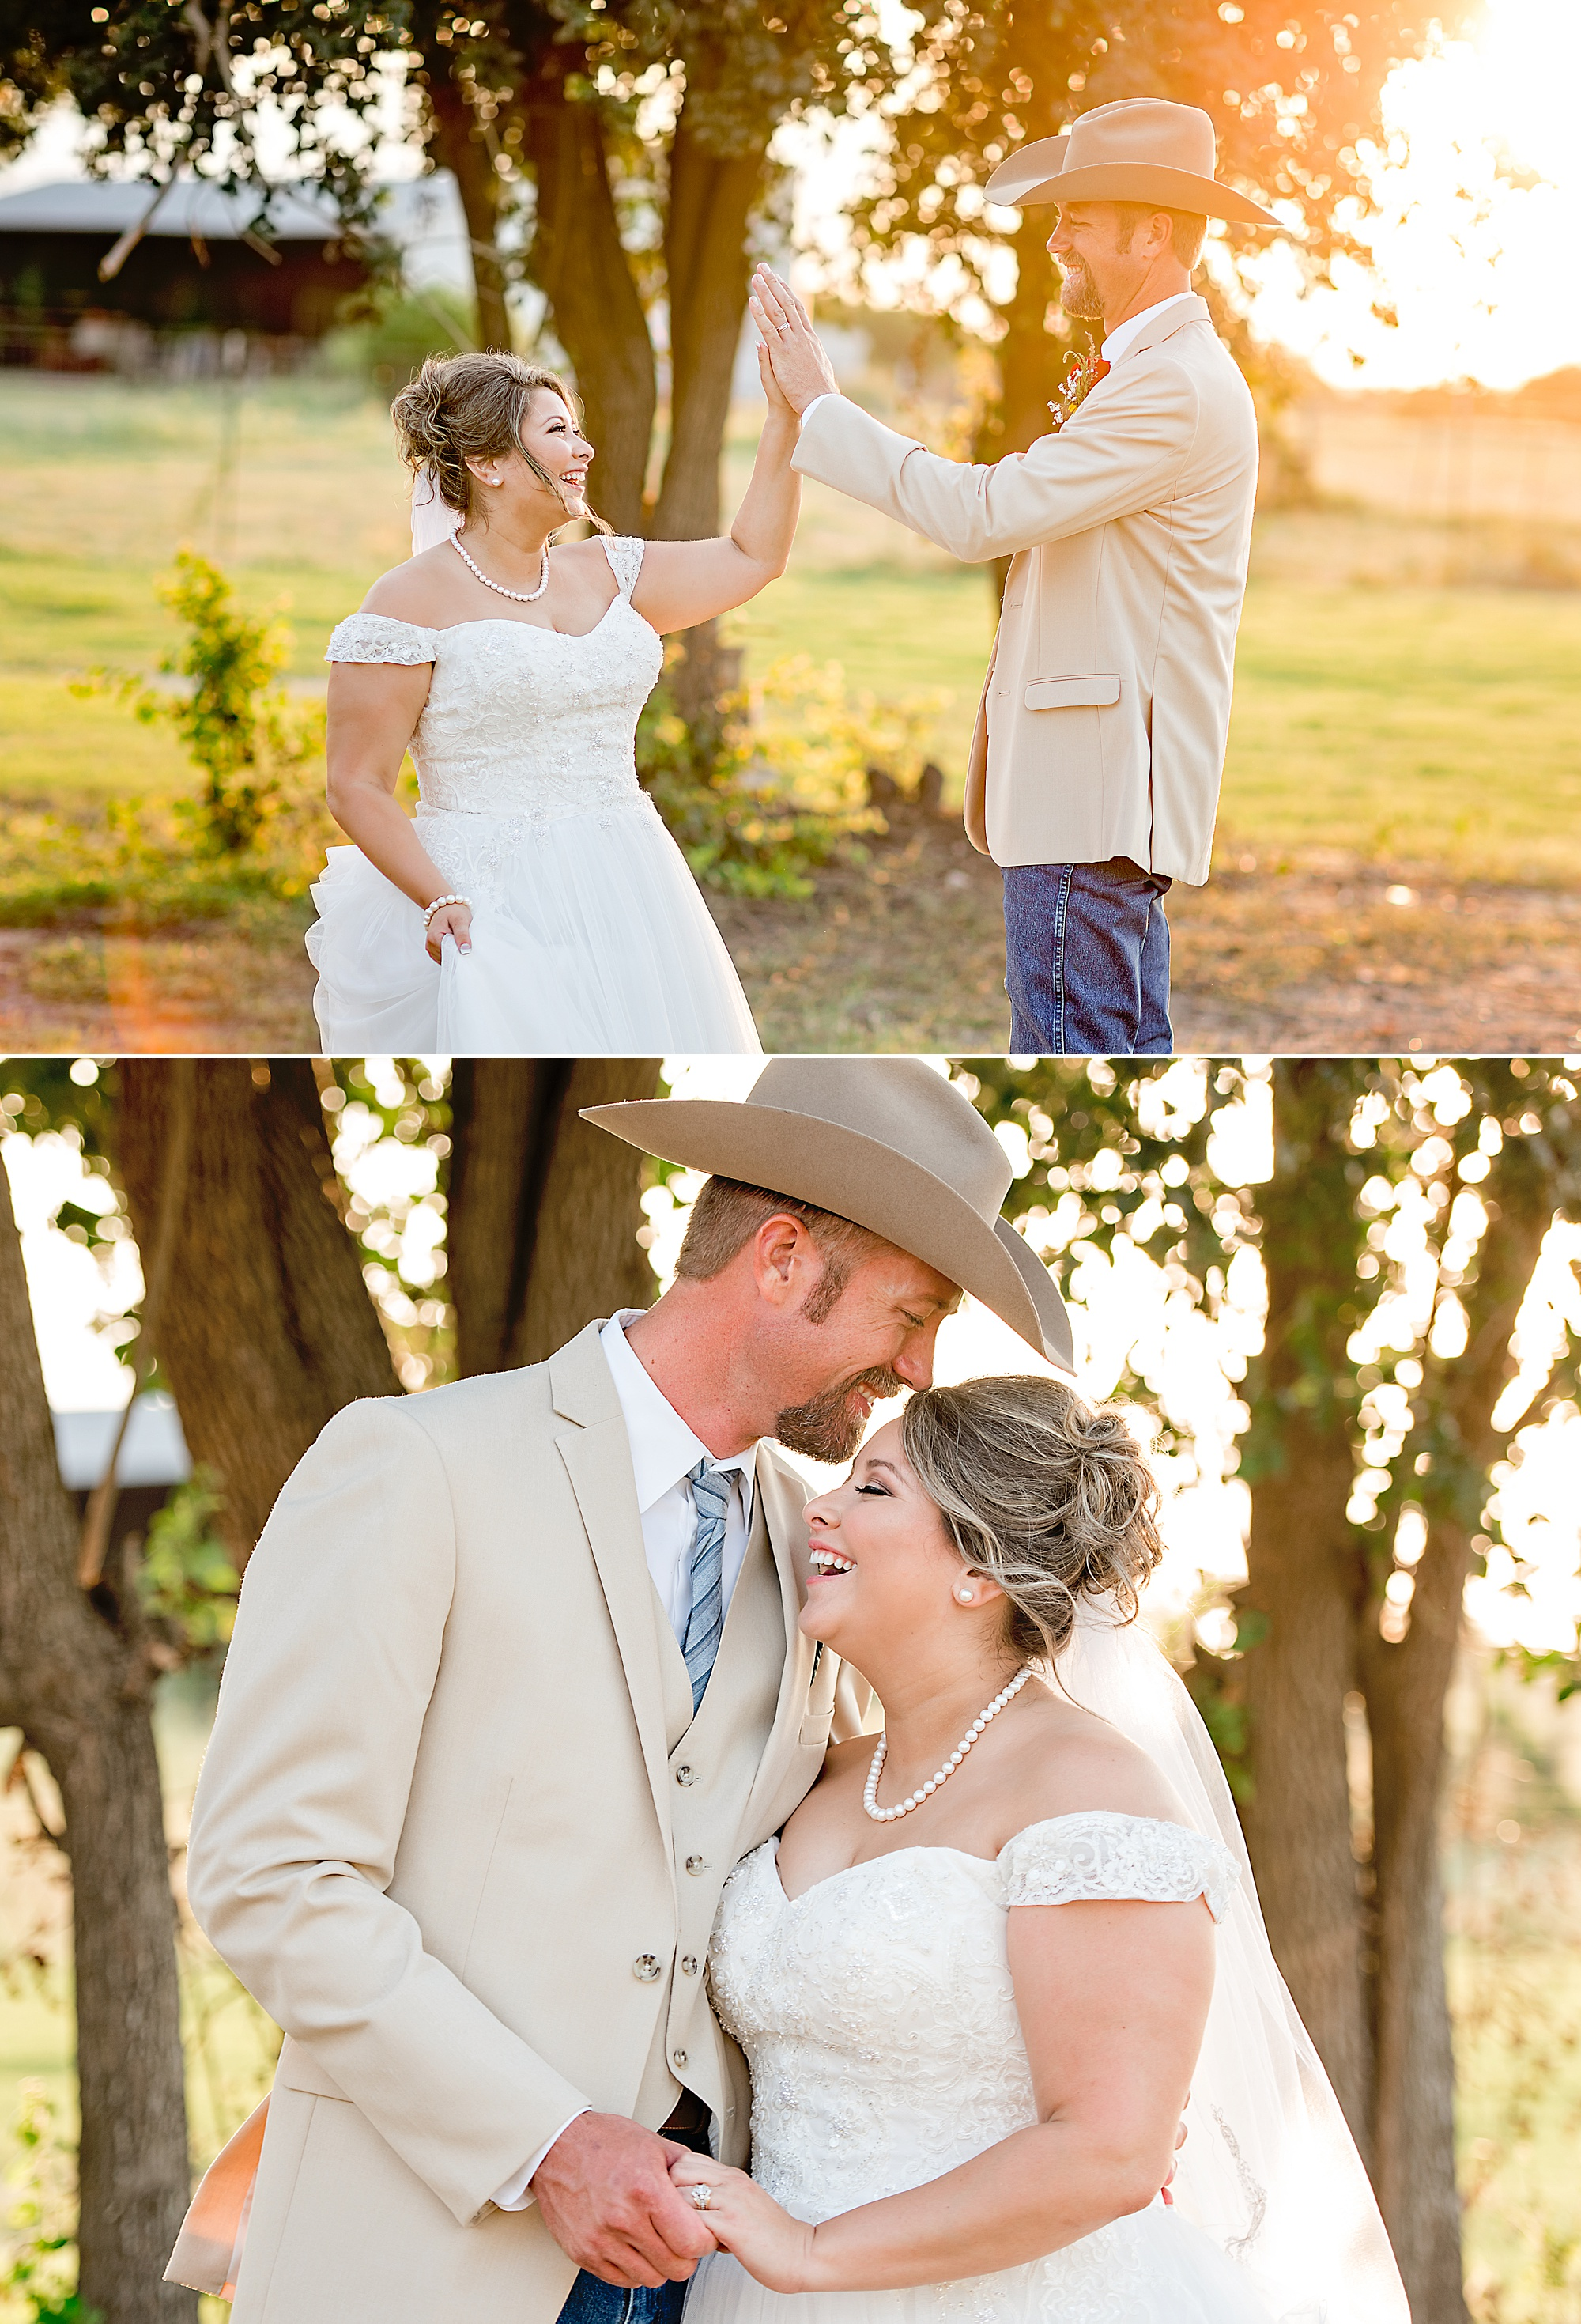 Wedding-Photographer-Rustic-Sunflower-theme-Texas-Carly-Barton-Photography_0105.jpg